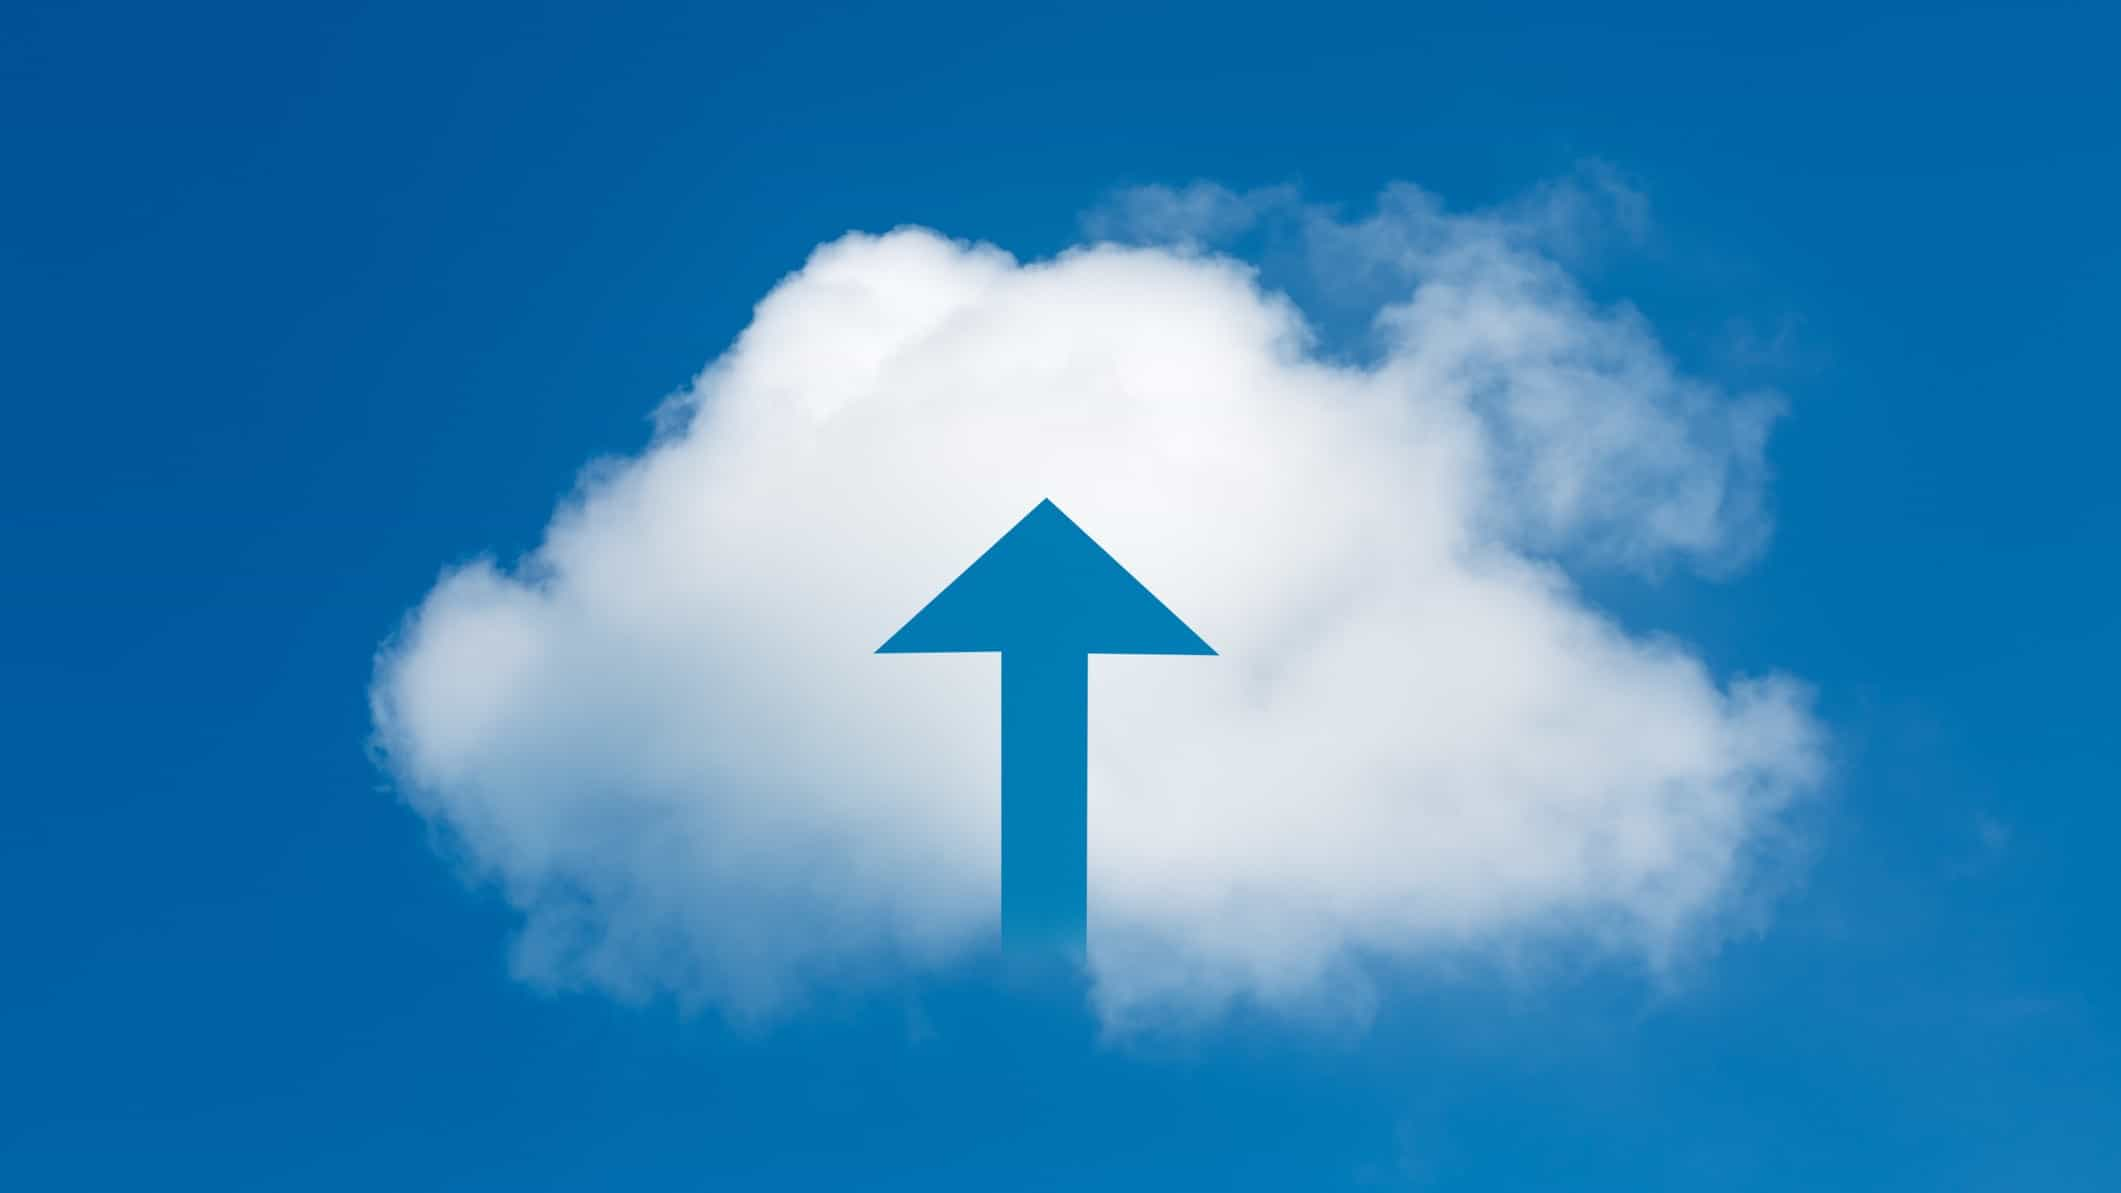 rising tesserent share price represented by a cloud with a blue arrow pointing upwards through its middle